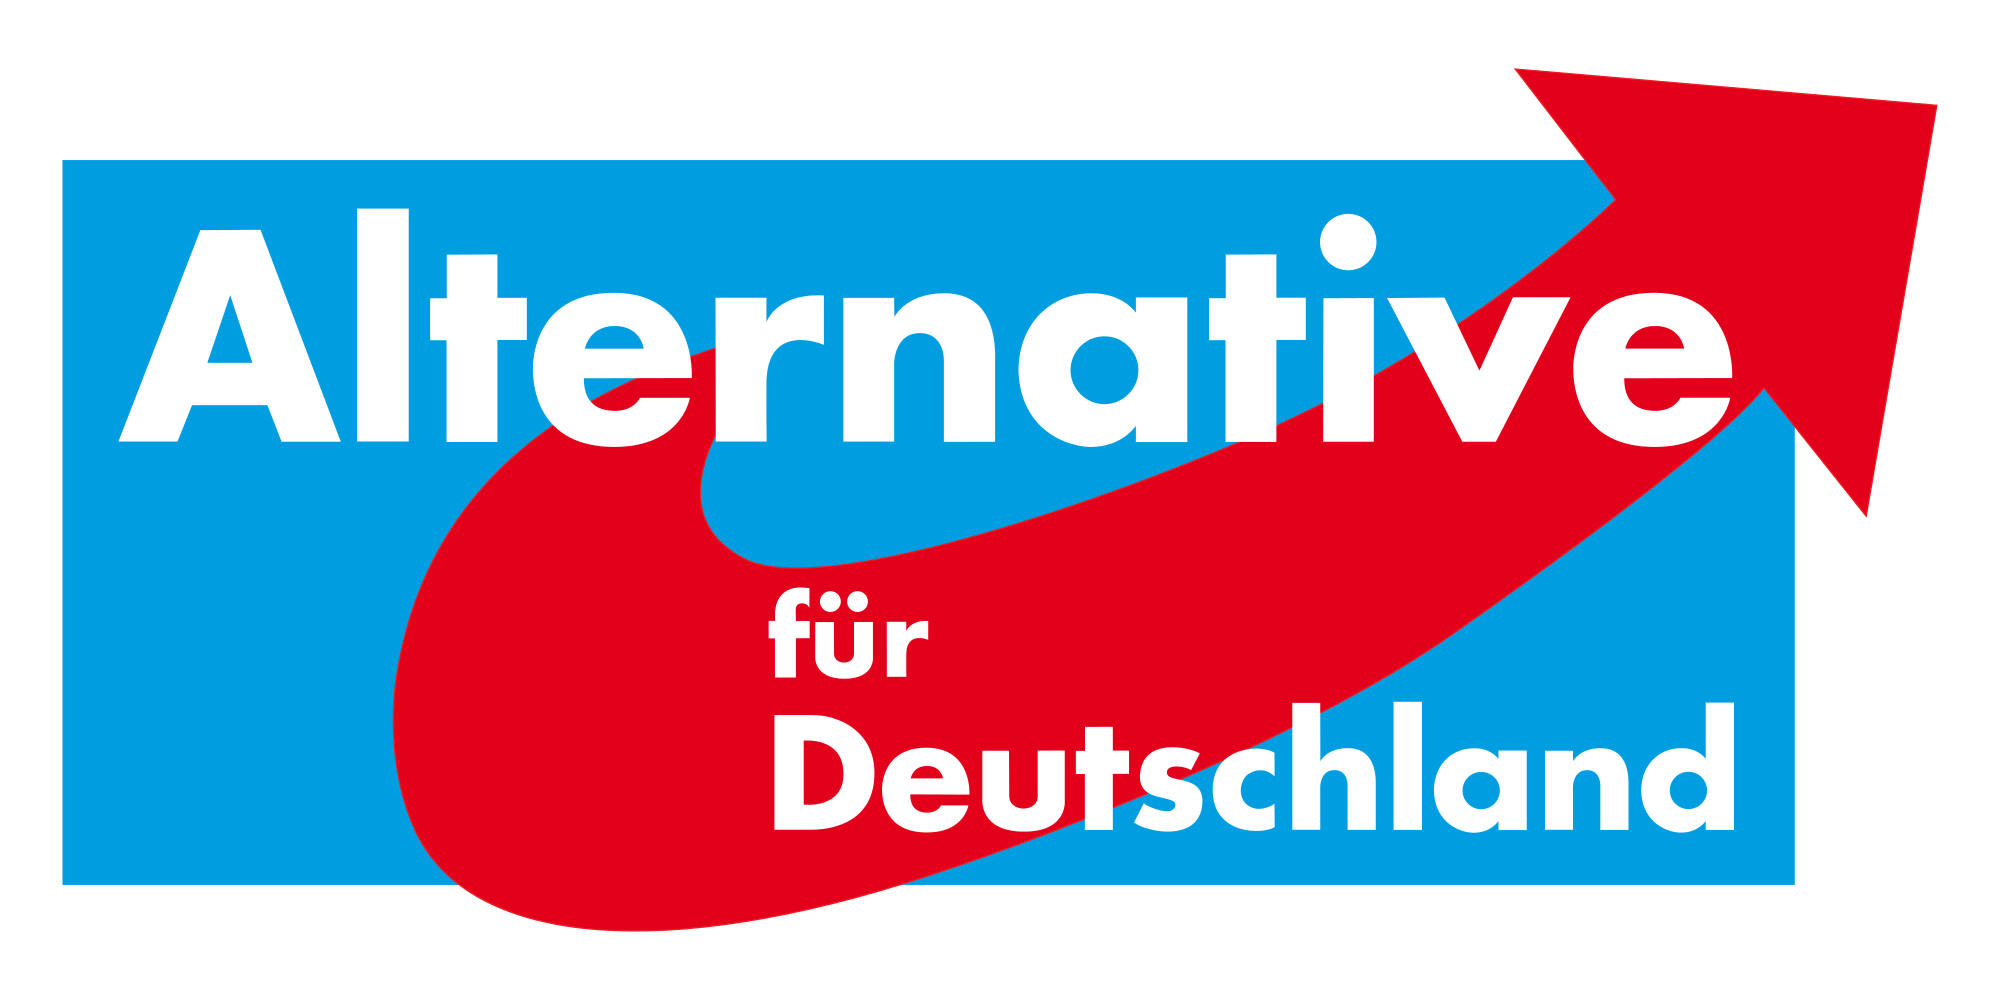 Alternative-fuer-Deutschland-Logopng